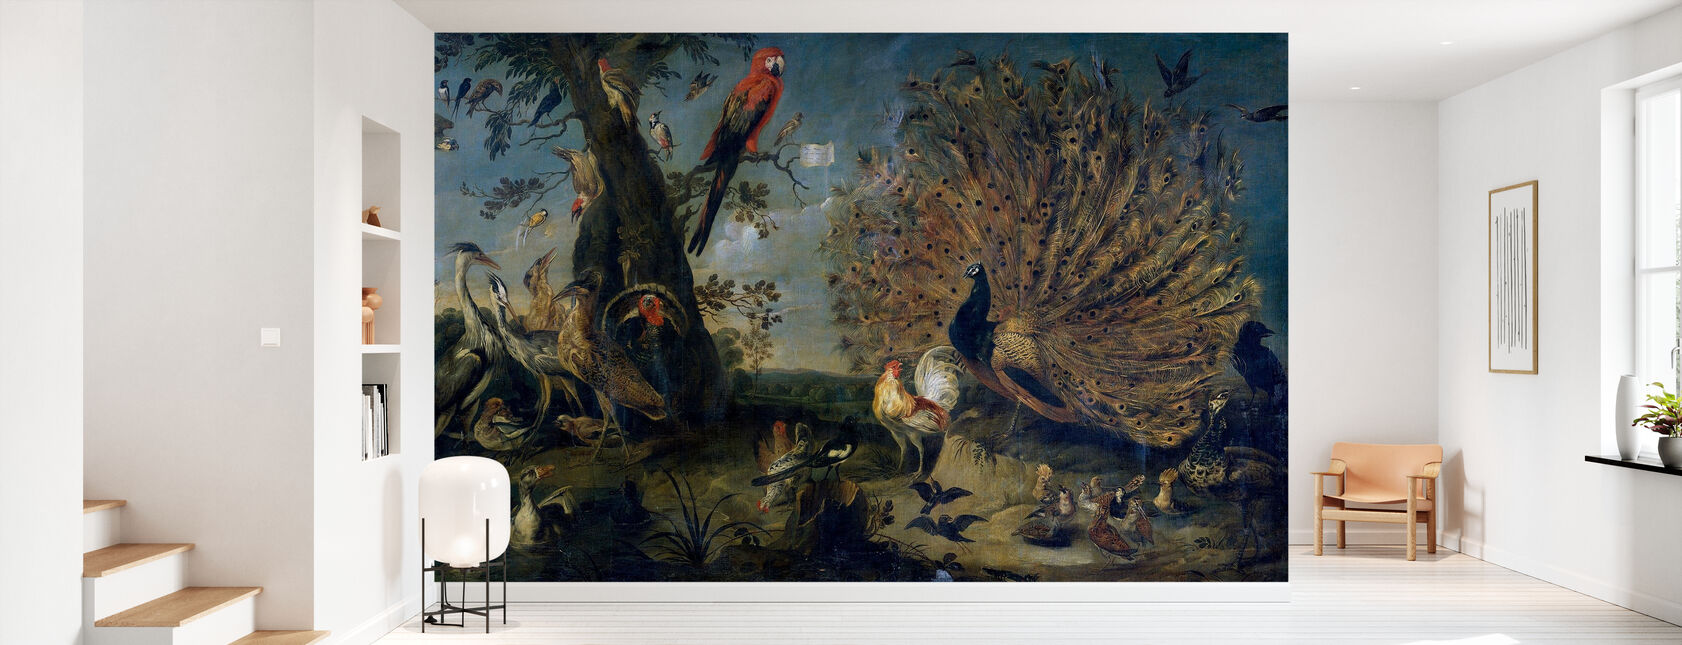 Vogelconcert - Frans Snyders - Behang - Gang